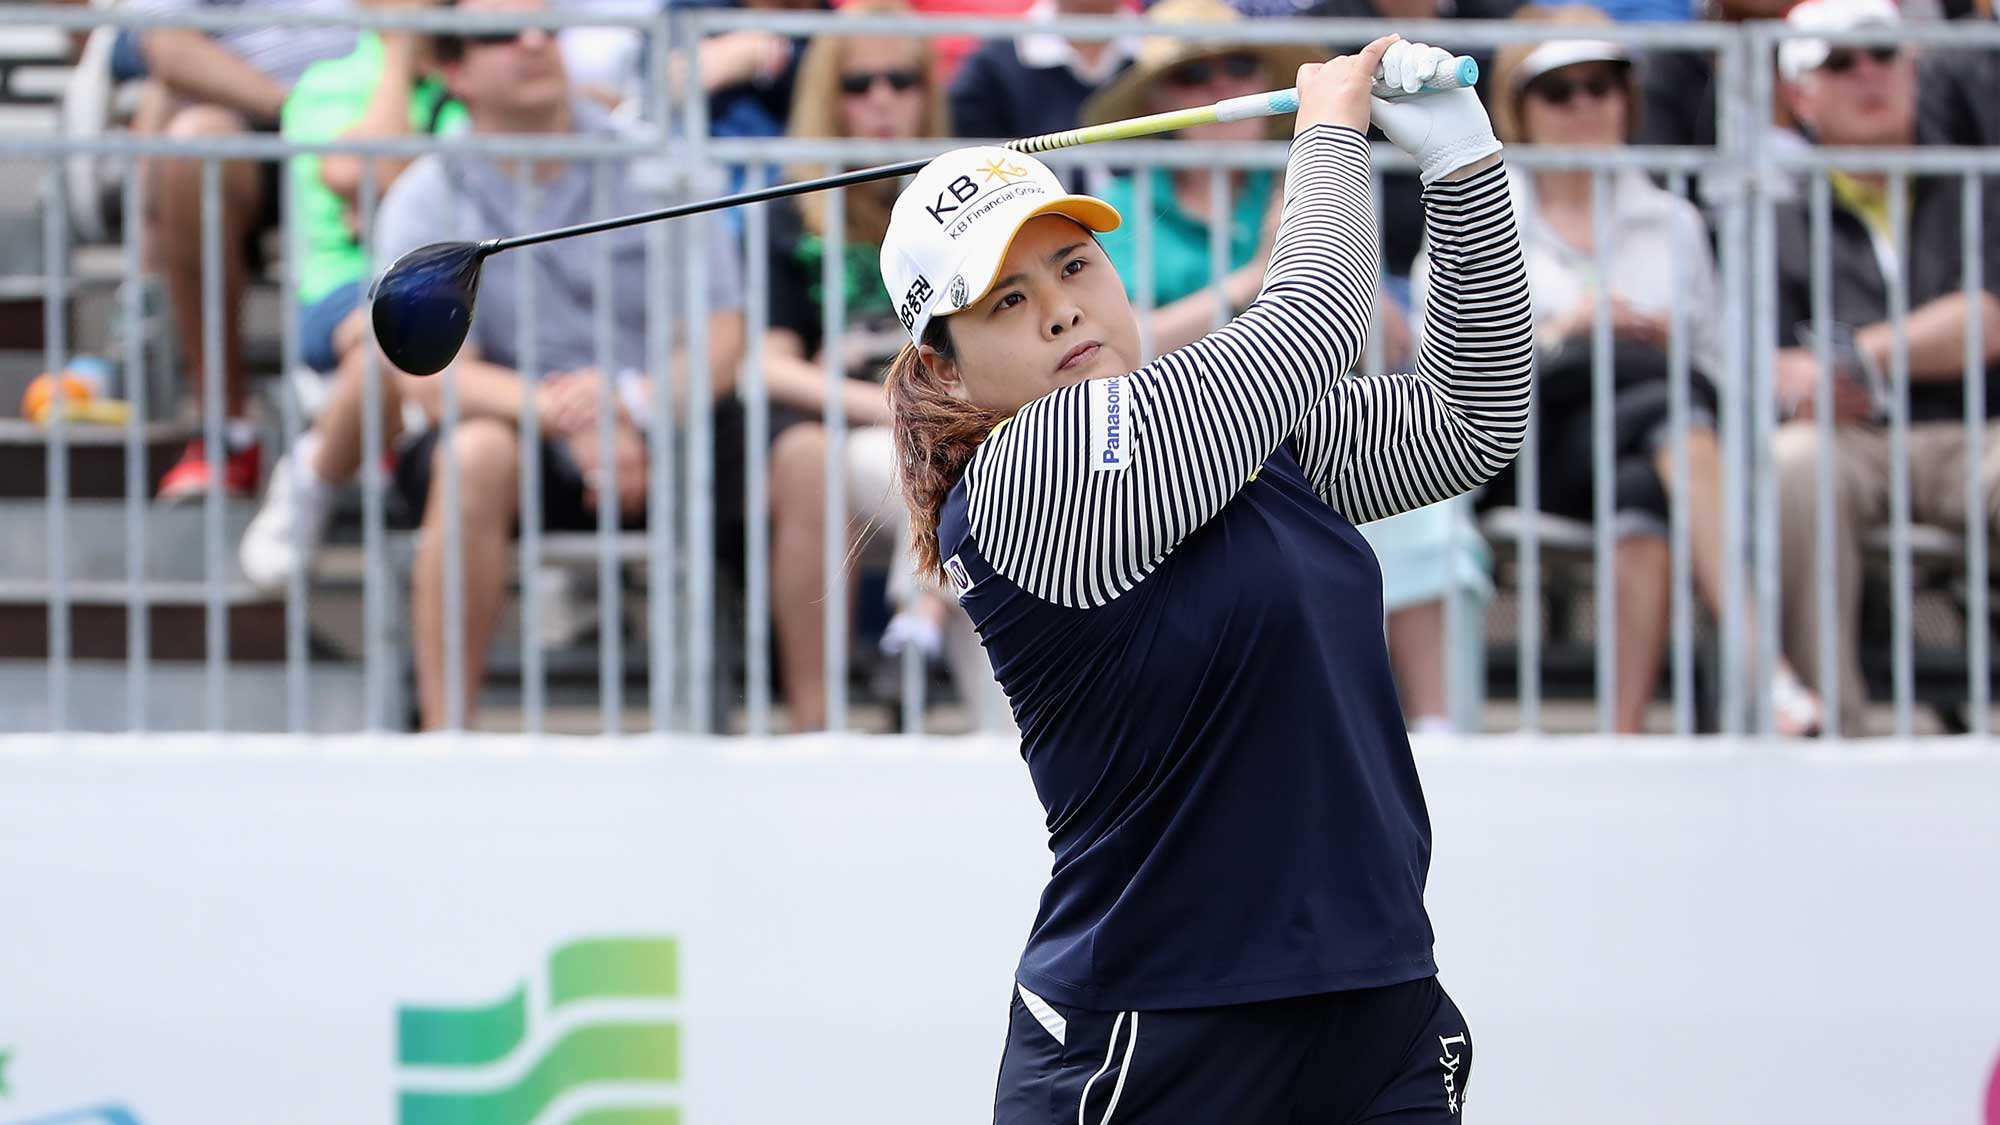 Inbee Park on Day Three of the Founders Cup